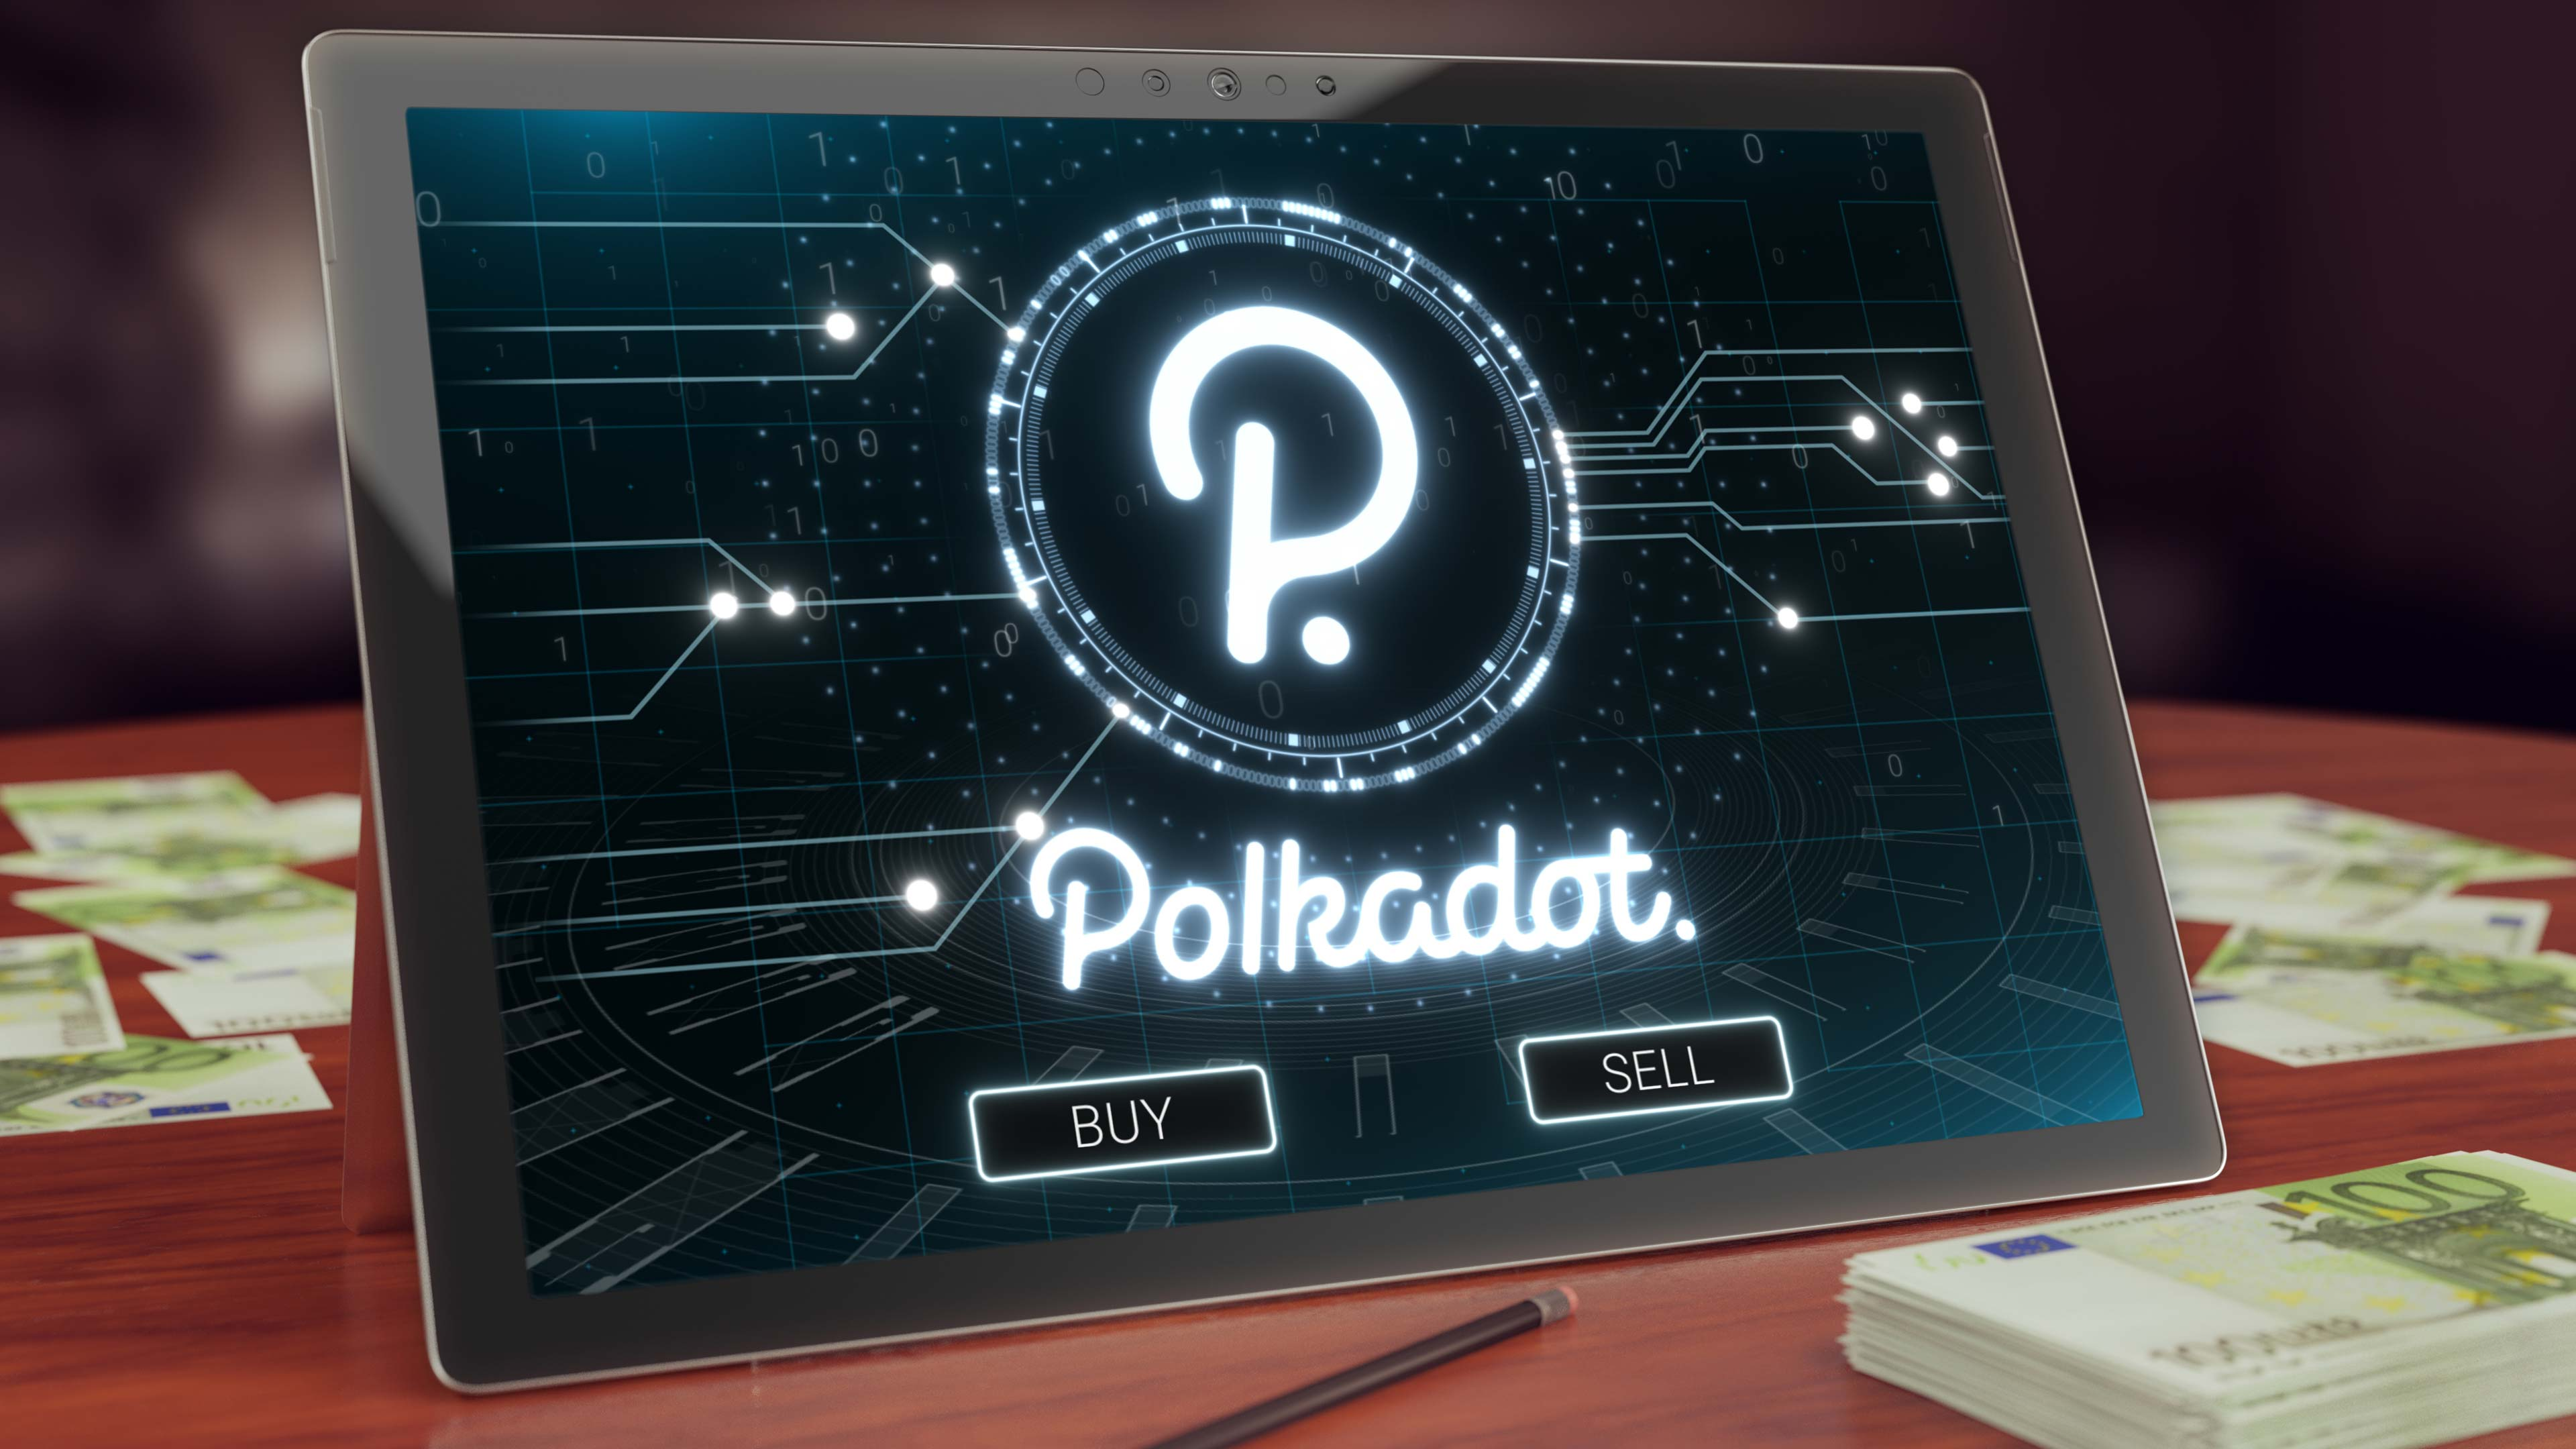 Top cryptocurrency listed — Polkadot